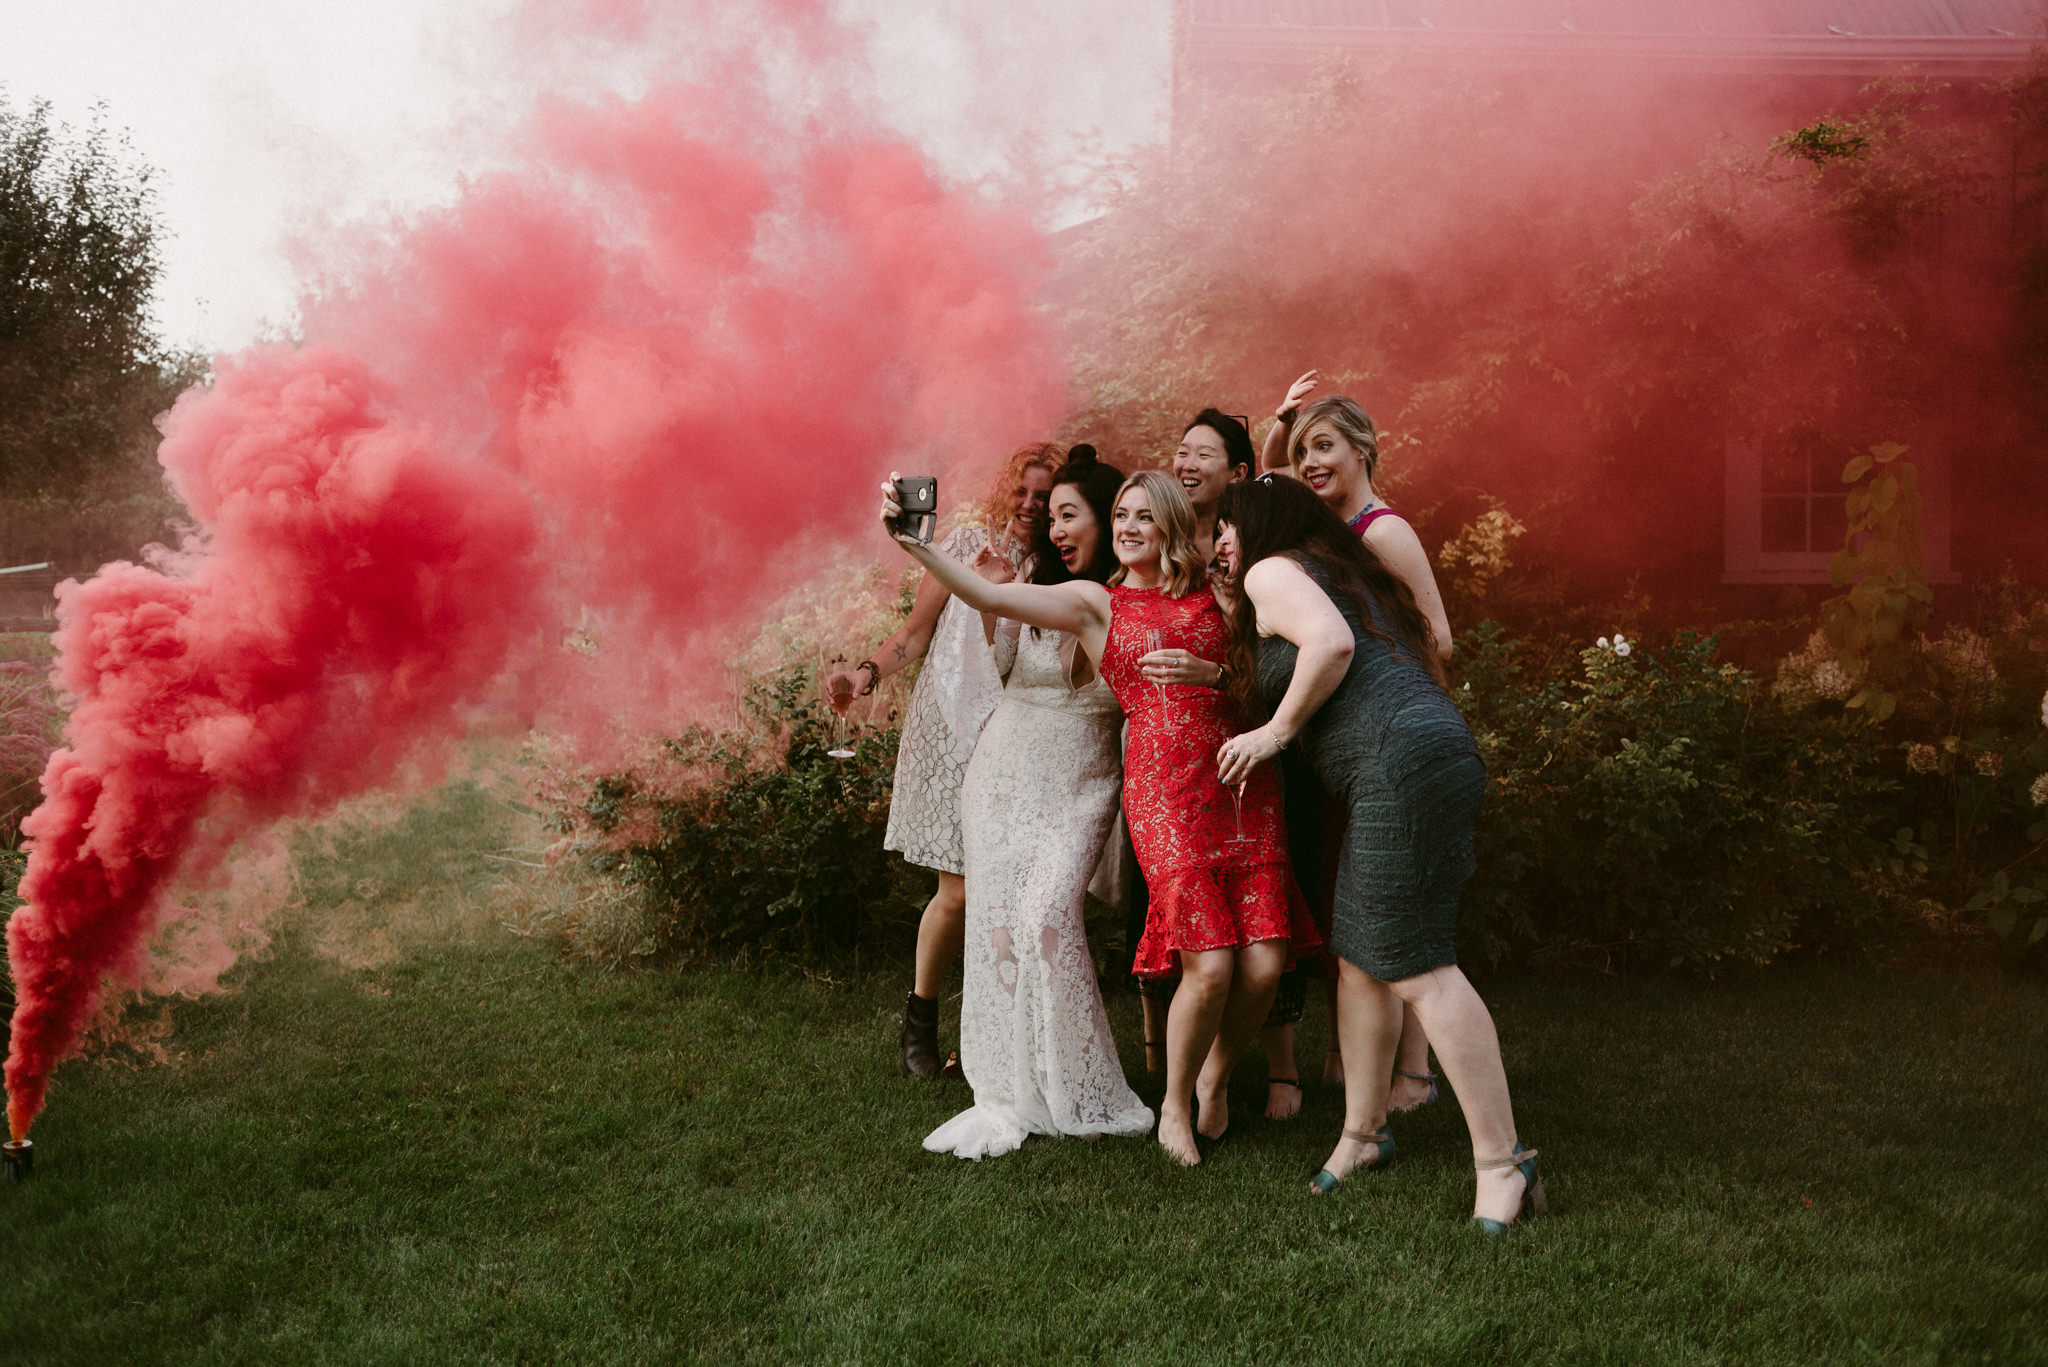 bride with friends taking selfie in red smoke bomb